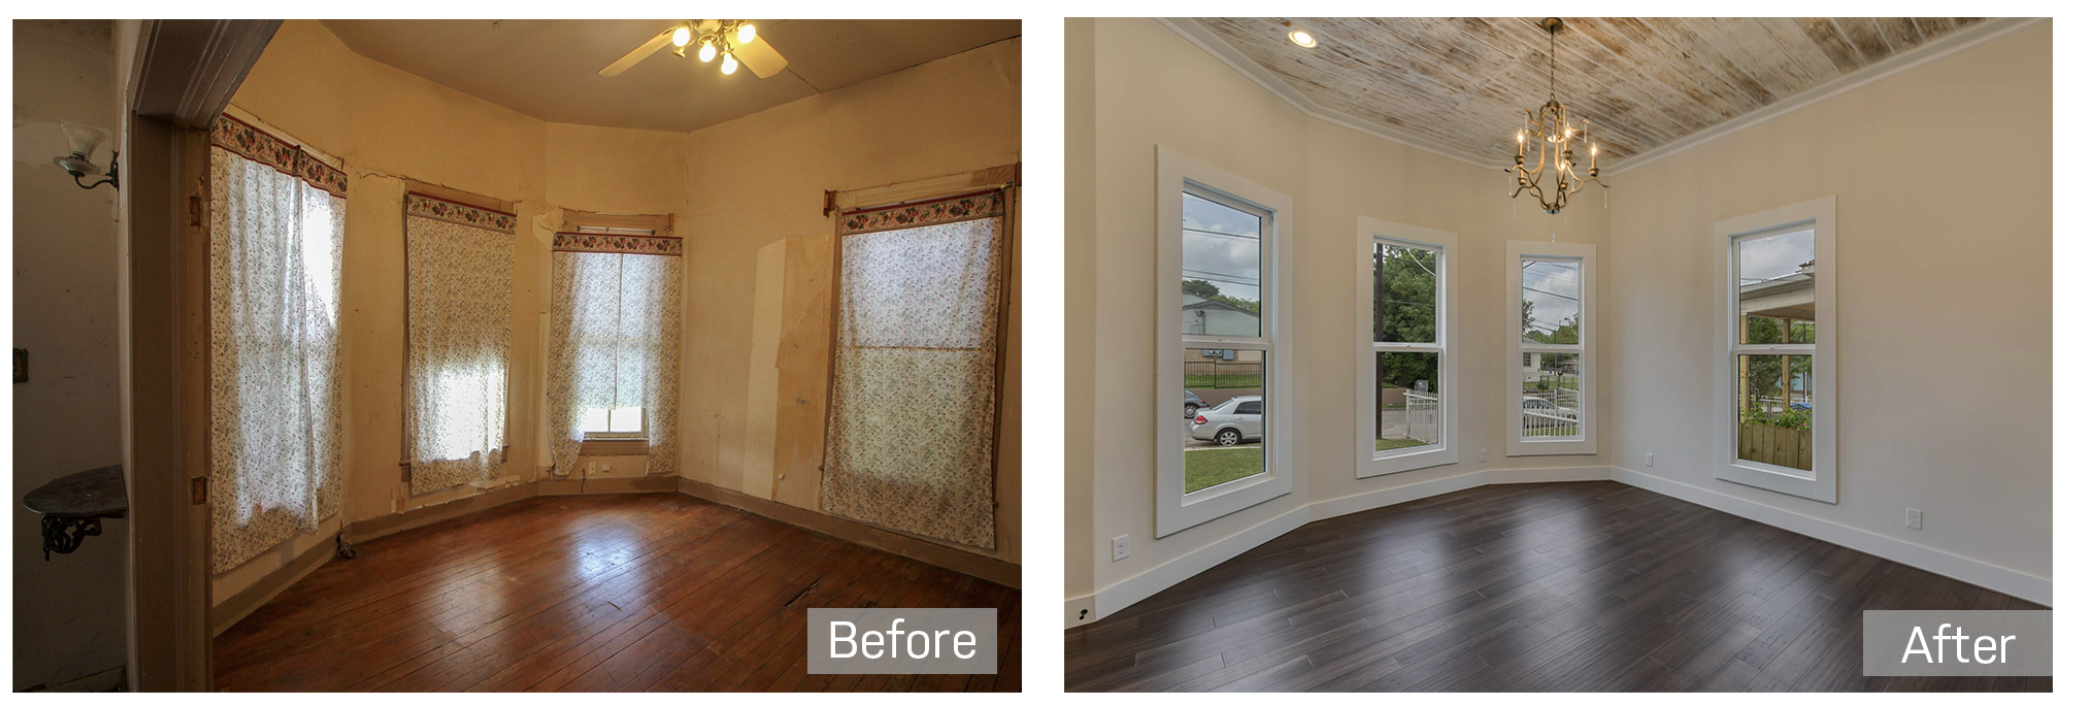 517 Burleson Before& After Bay Windows.png